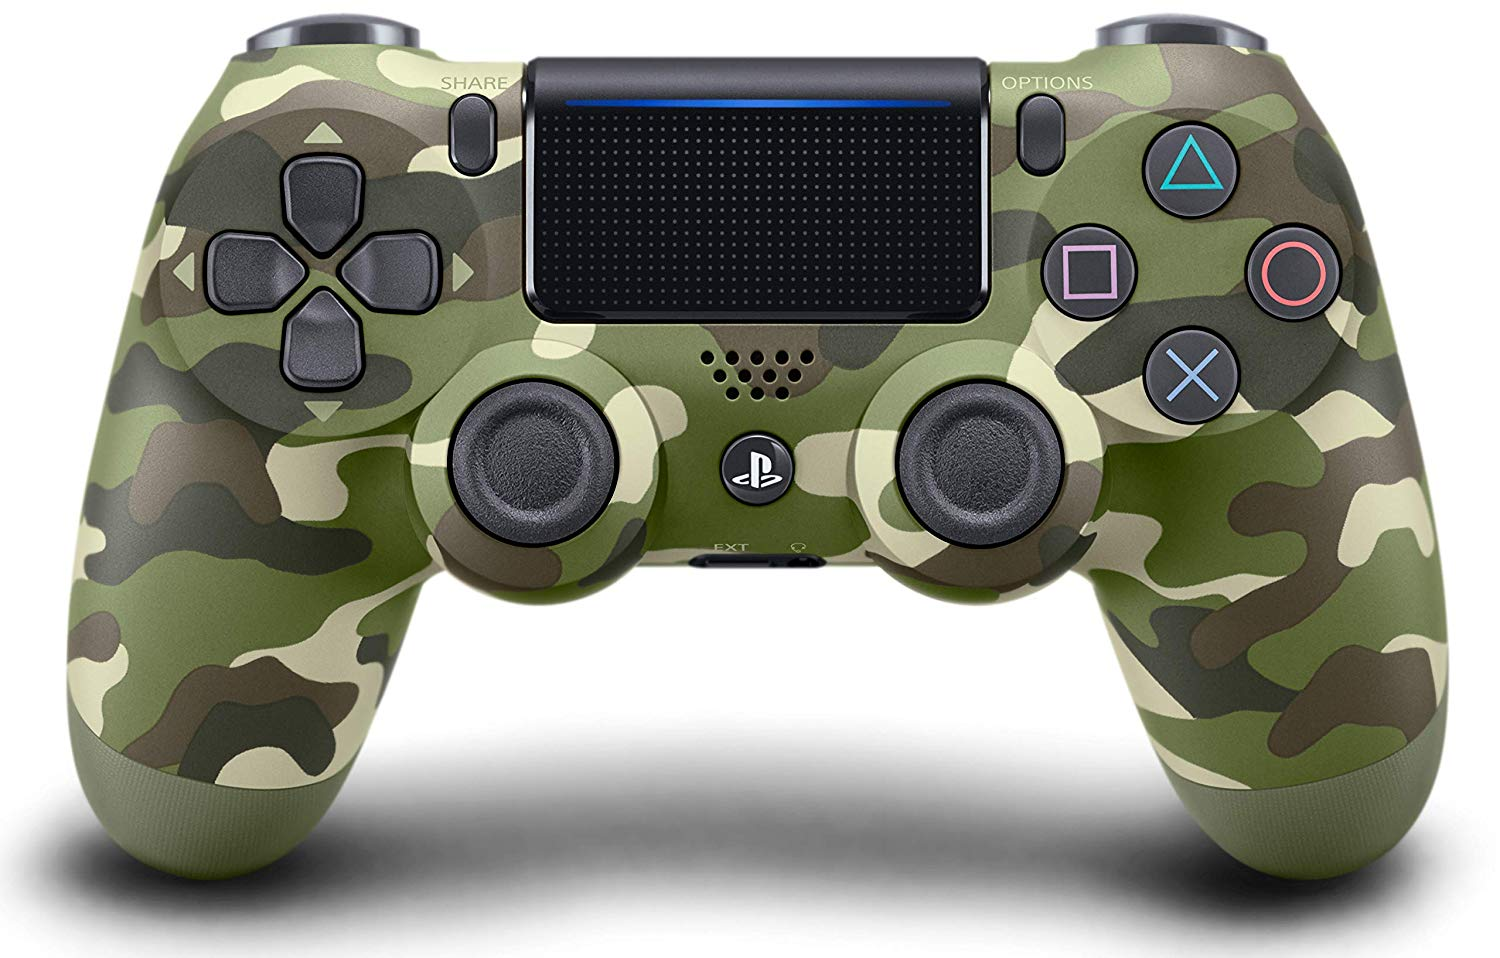 Sony PlayStation 4 DualShock 4 Wireless Controller Green Camouflage